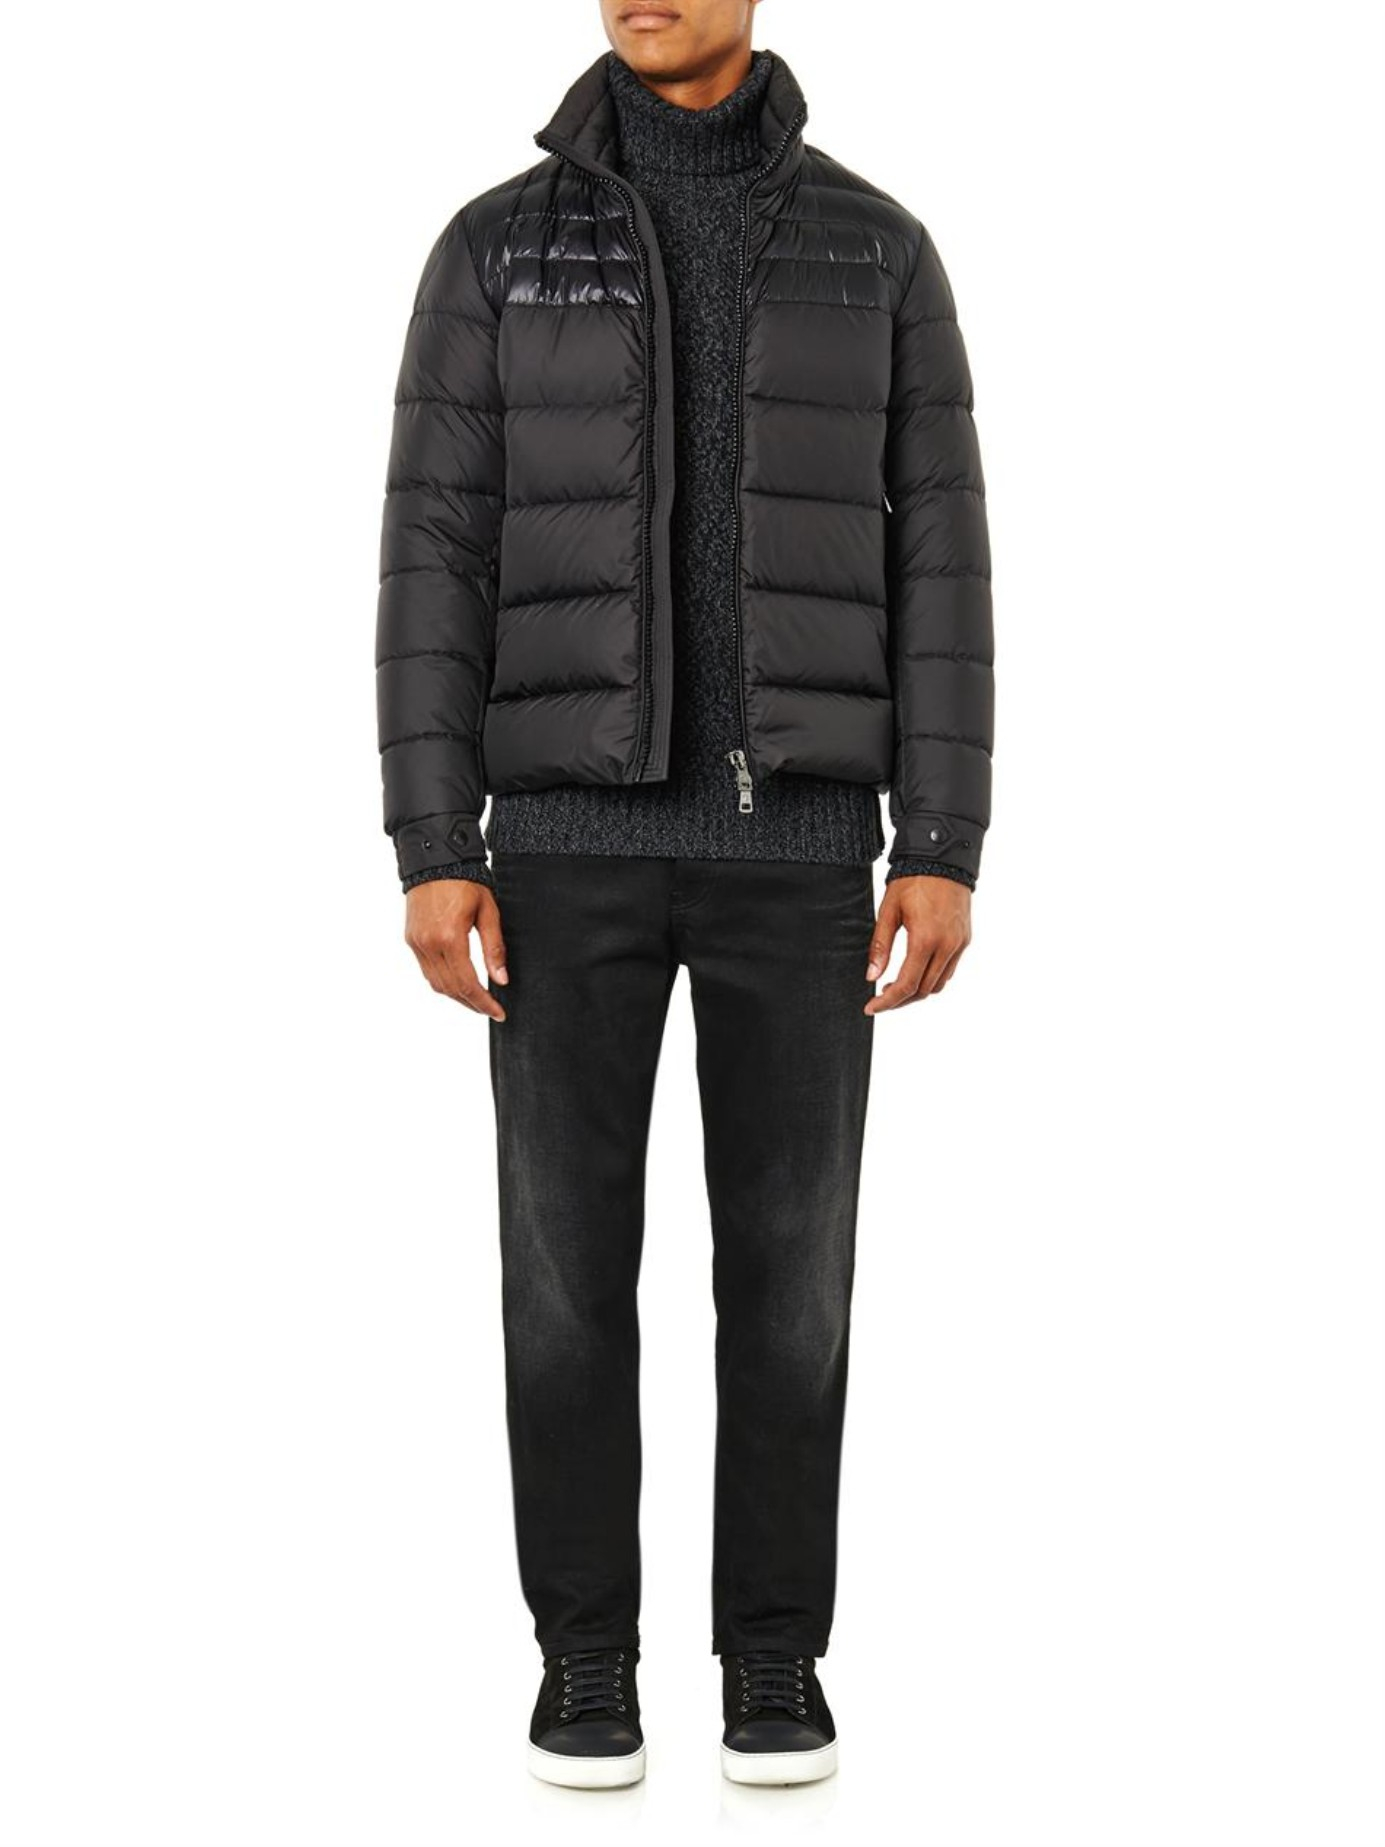 db939e6f7 Lyst - Moncler Dinant Matte And Shine Jacket in Black for Men